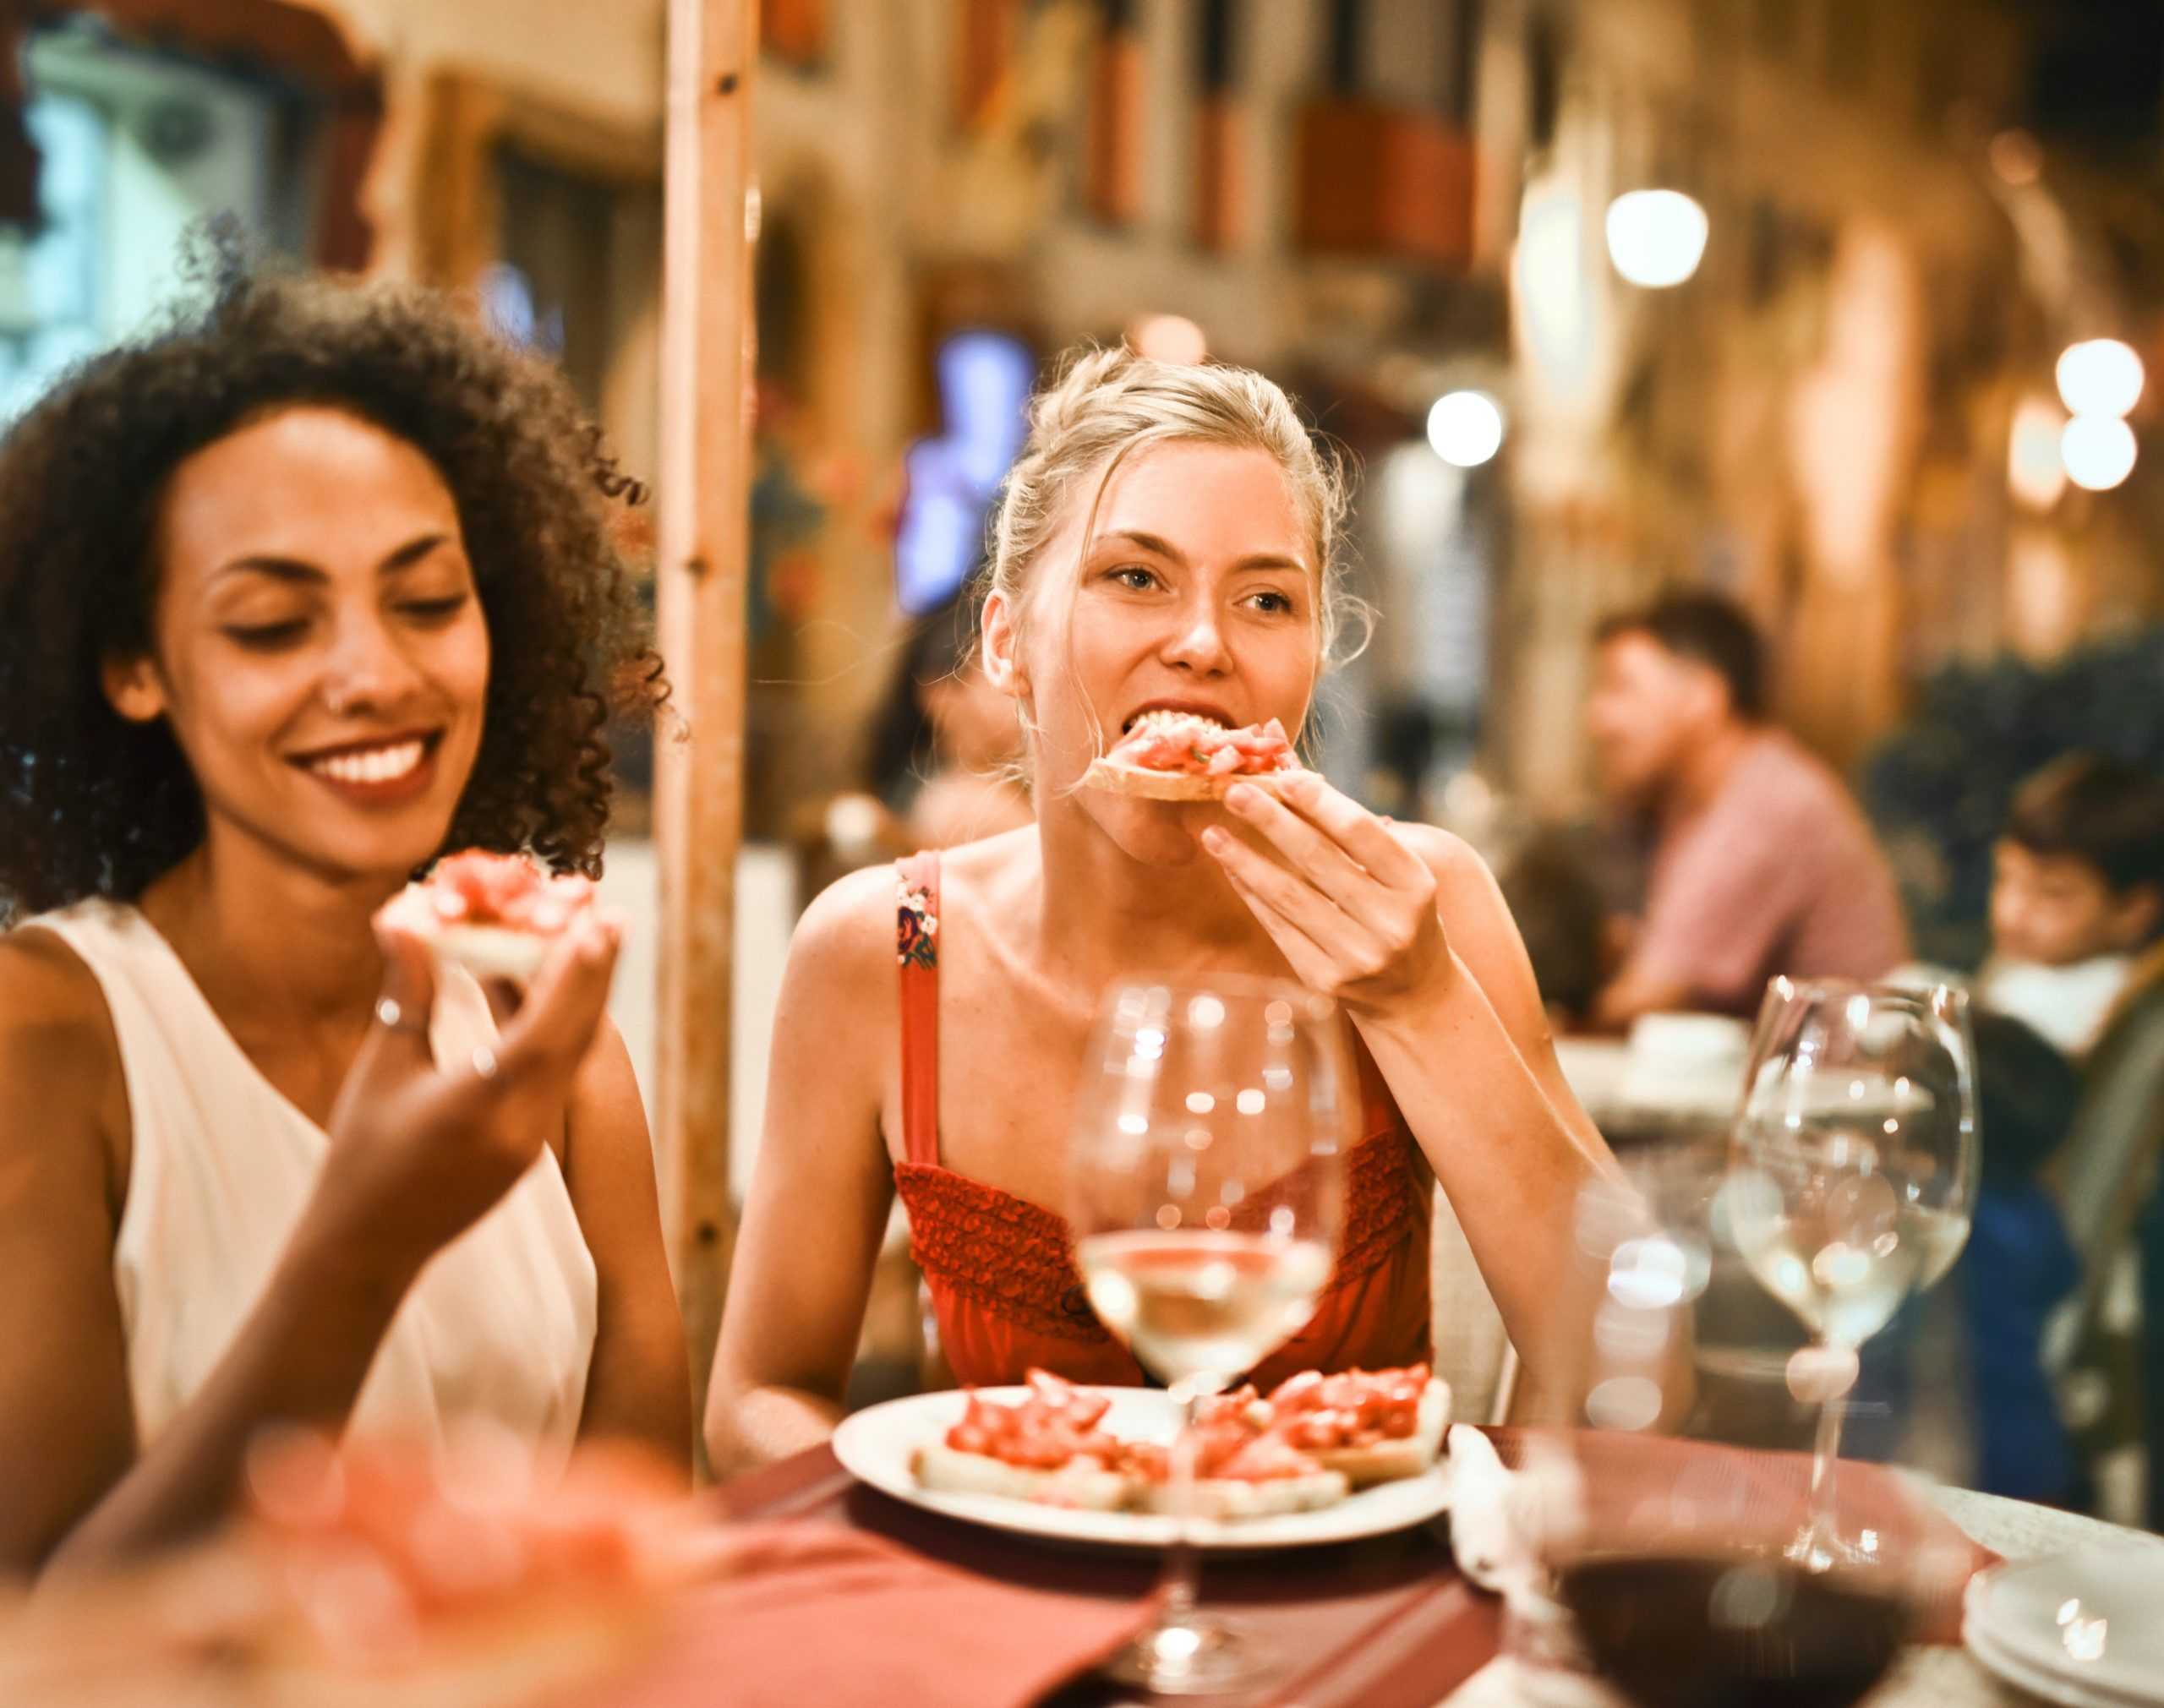 woman eating in a resturant